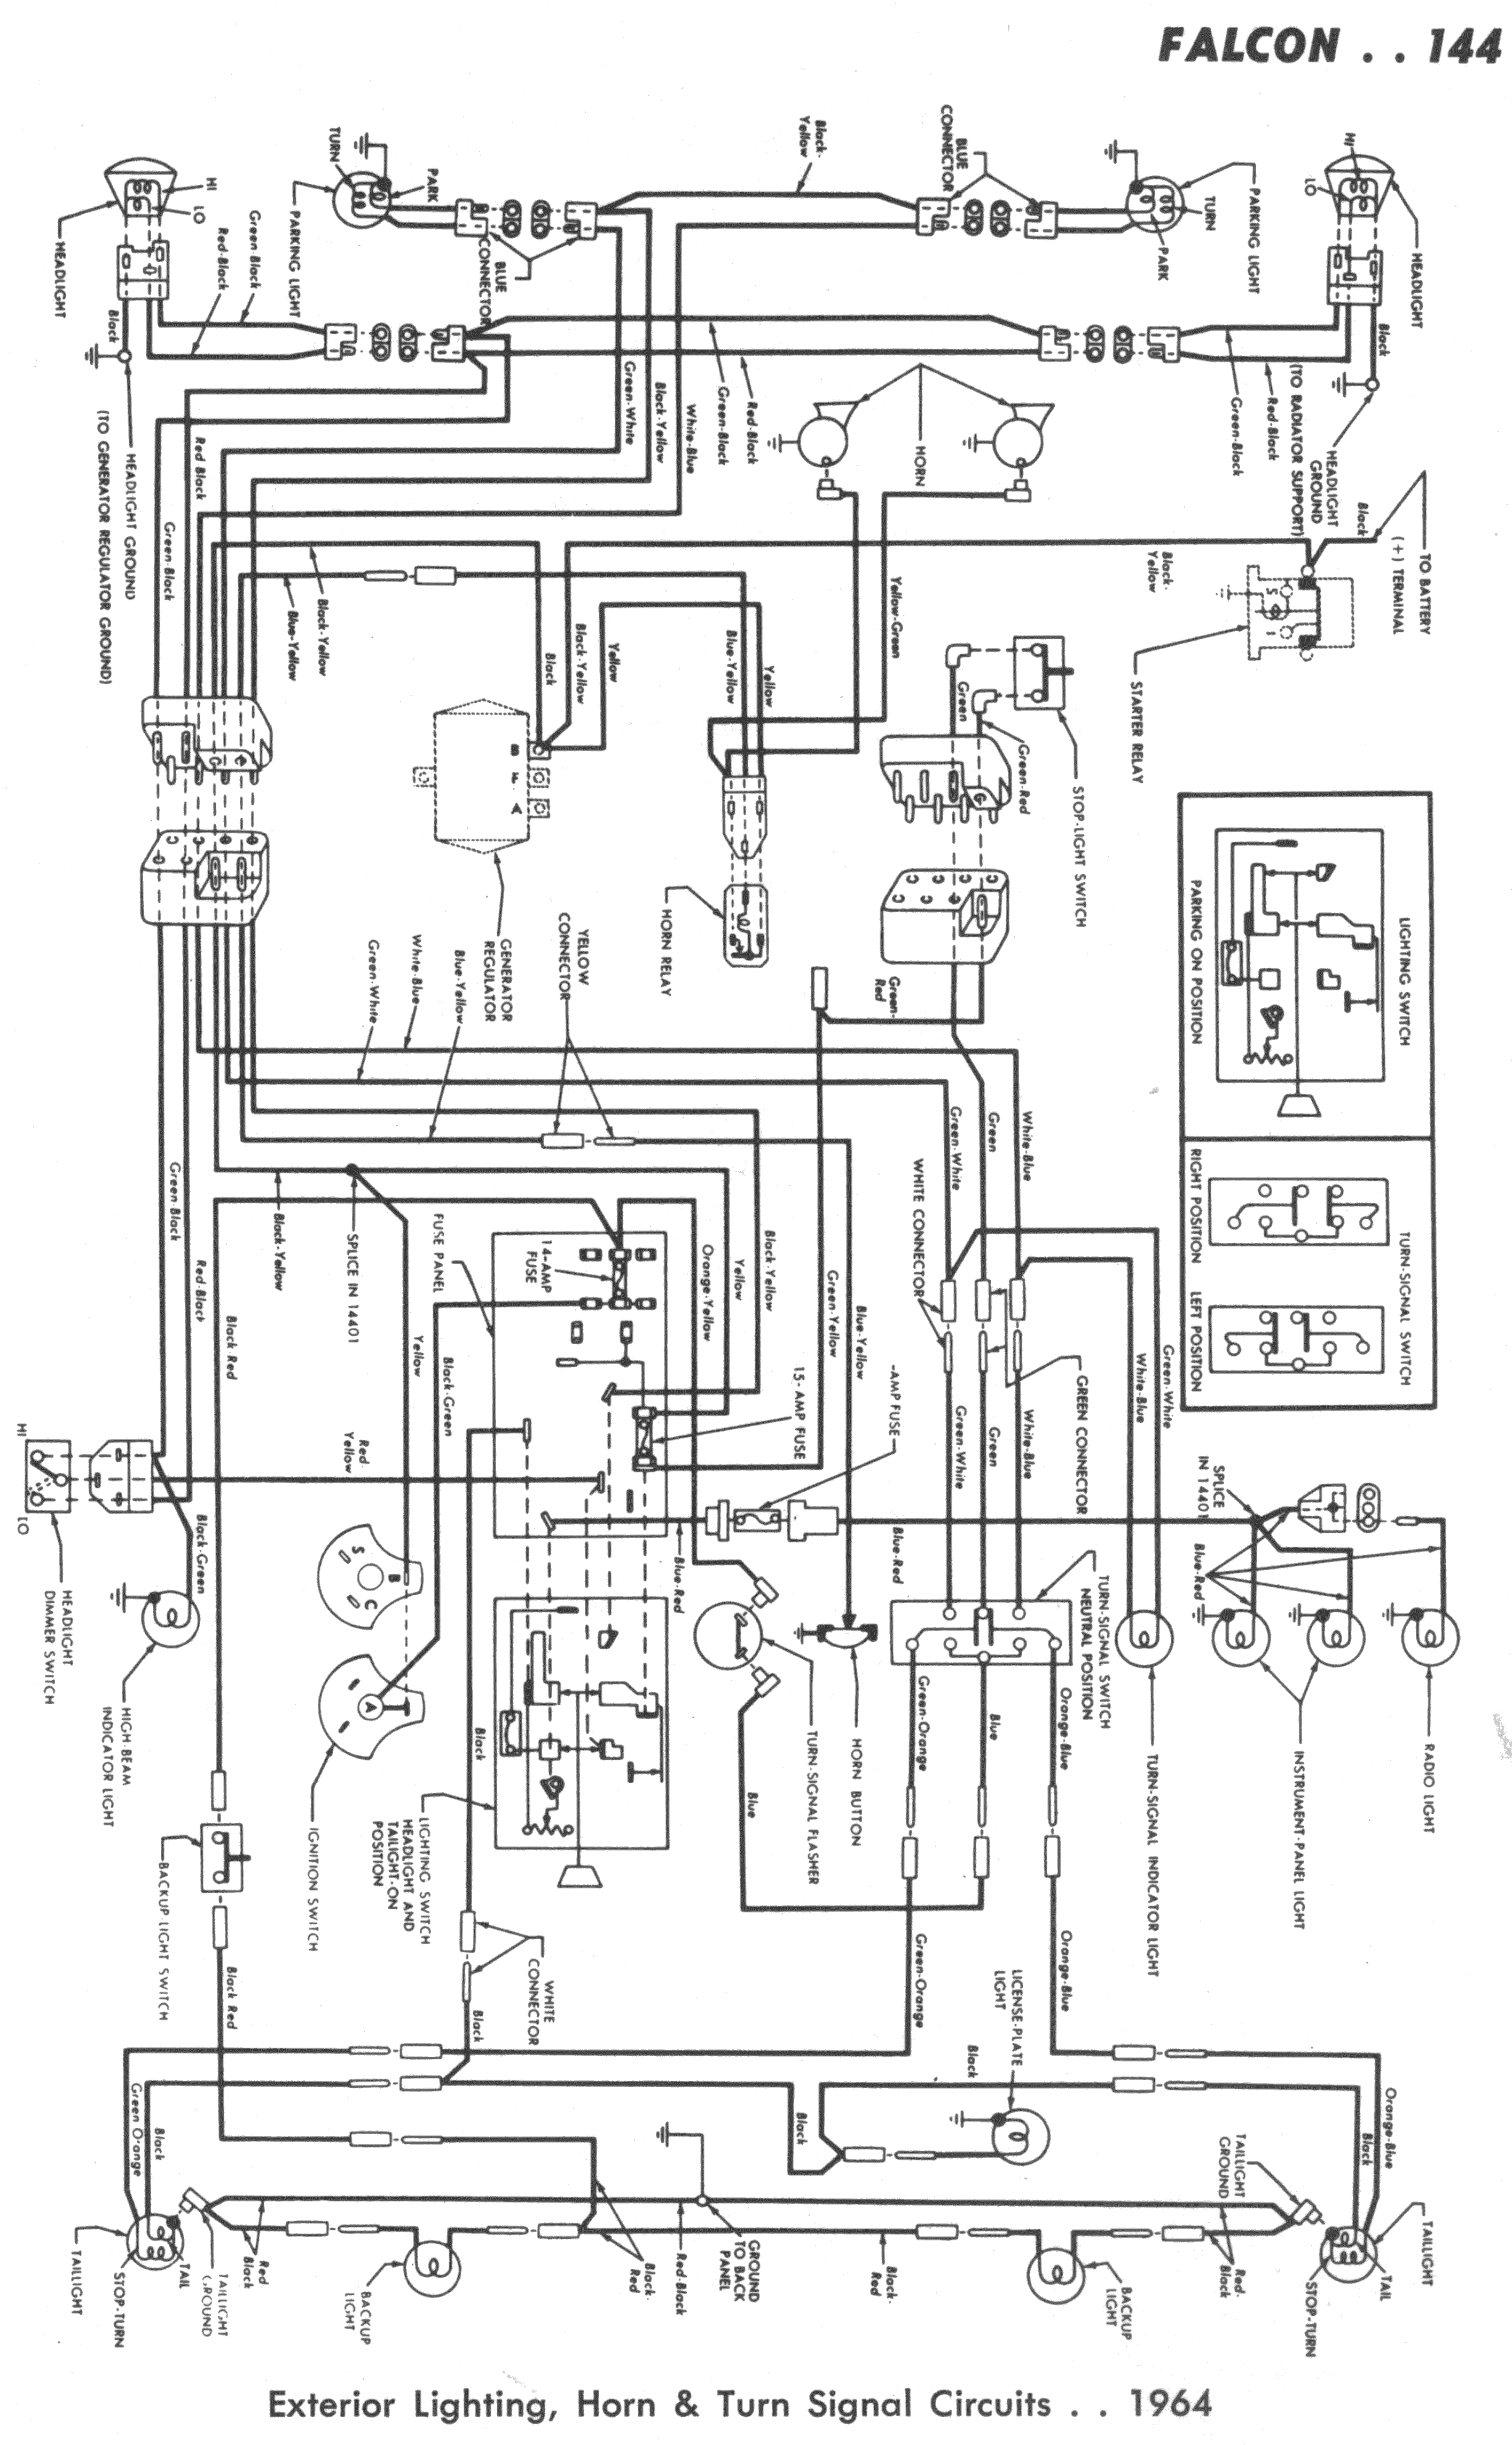 1962 Mercury Comet Wiring Diagram